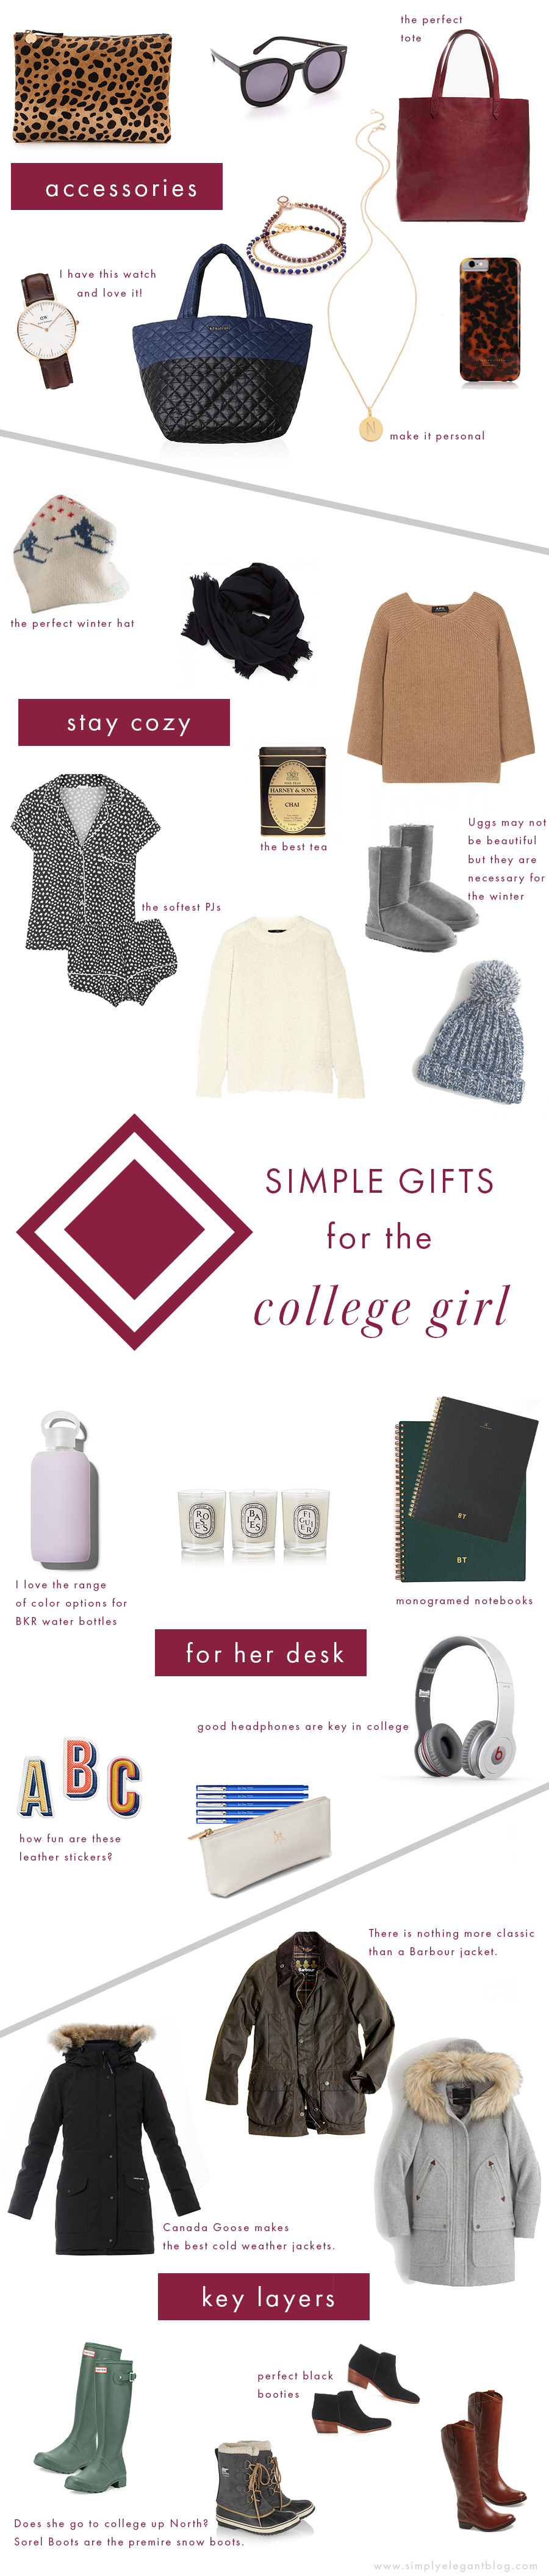 Holiday Gift for College Girl Simply Elegant